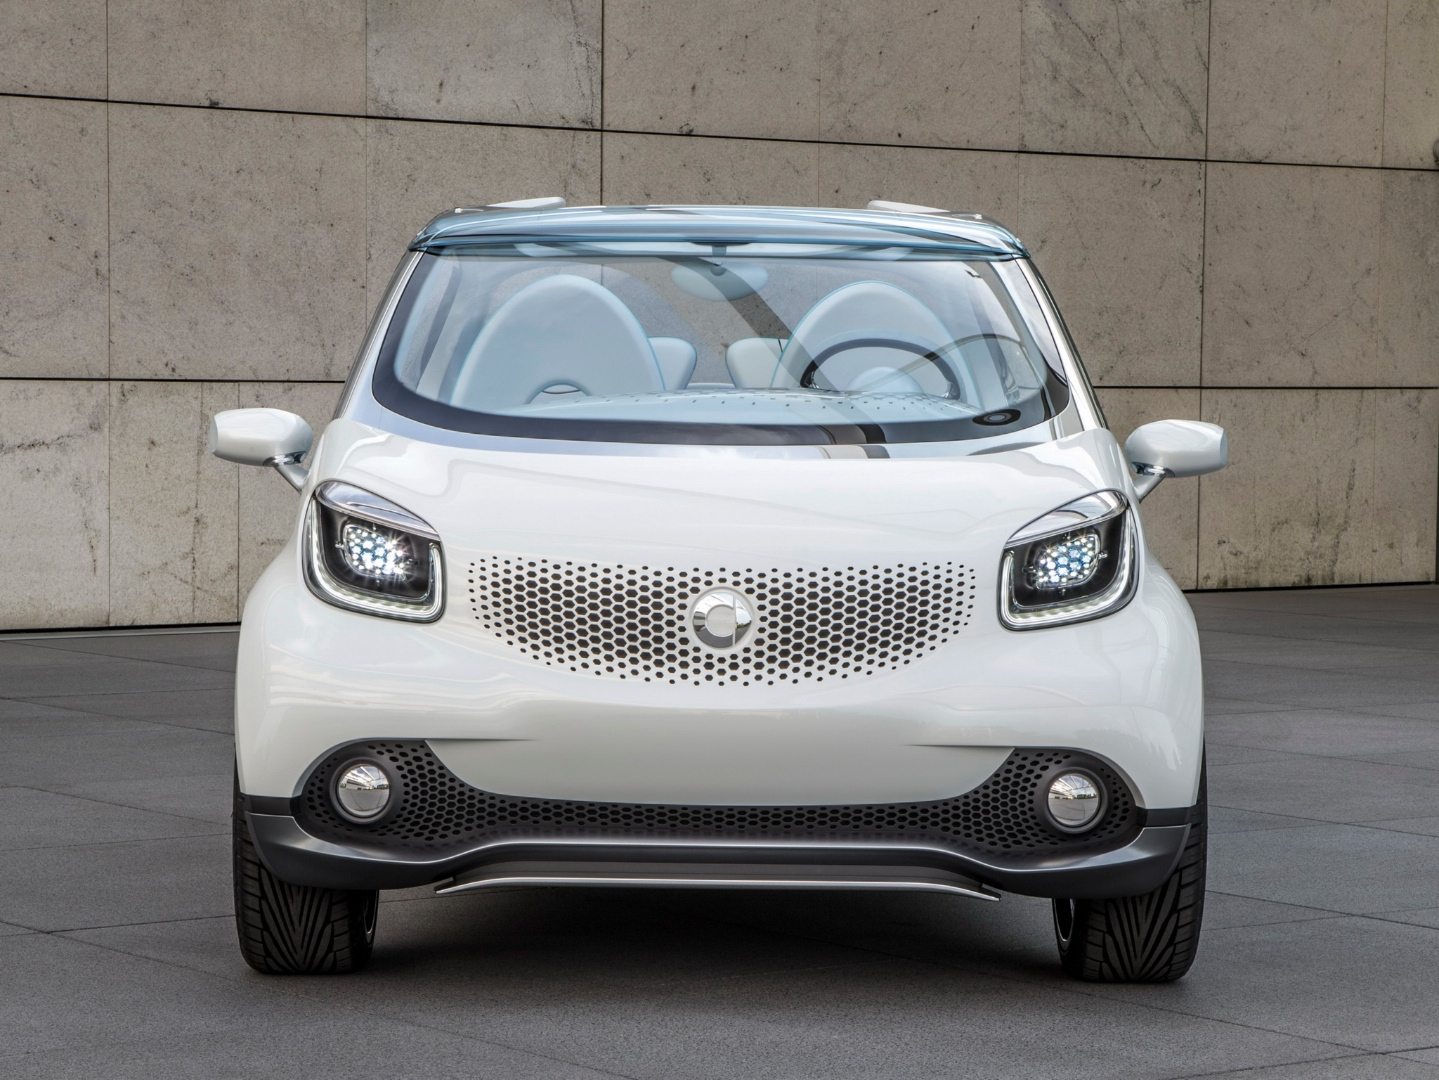 2015 smart fortwo And forfour Unveil Date Announced ...